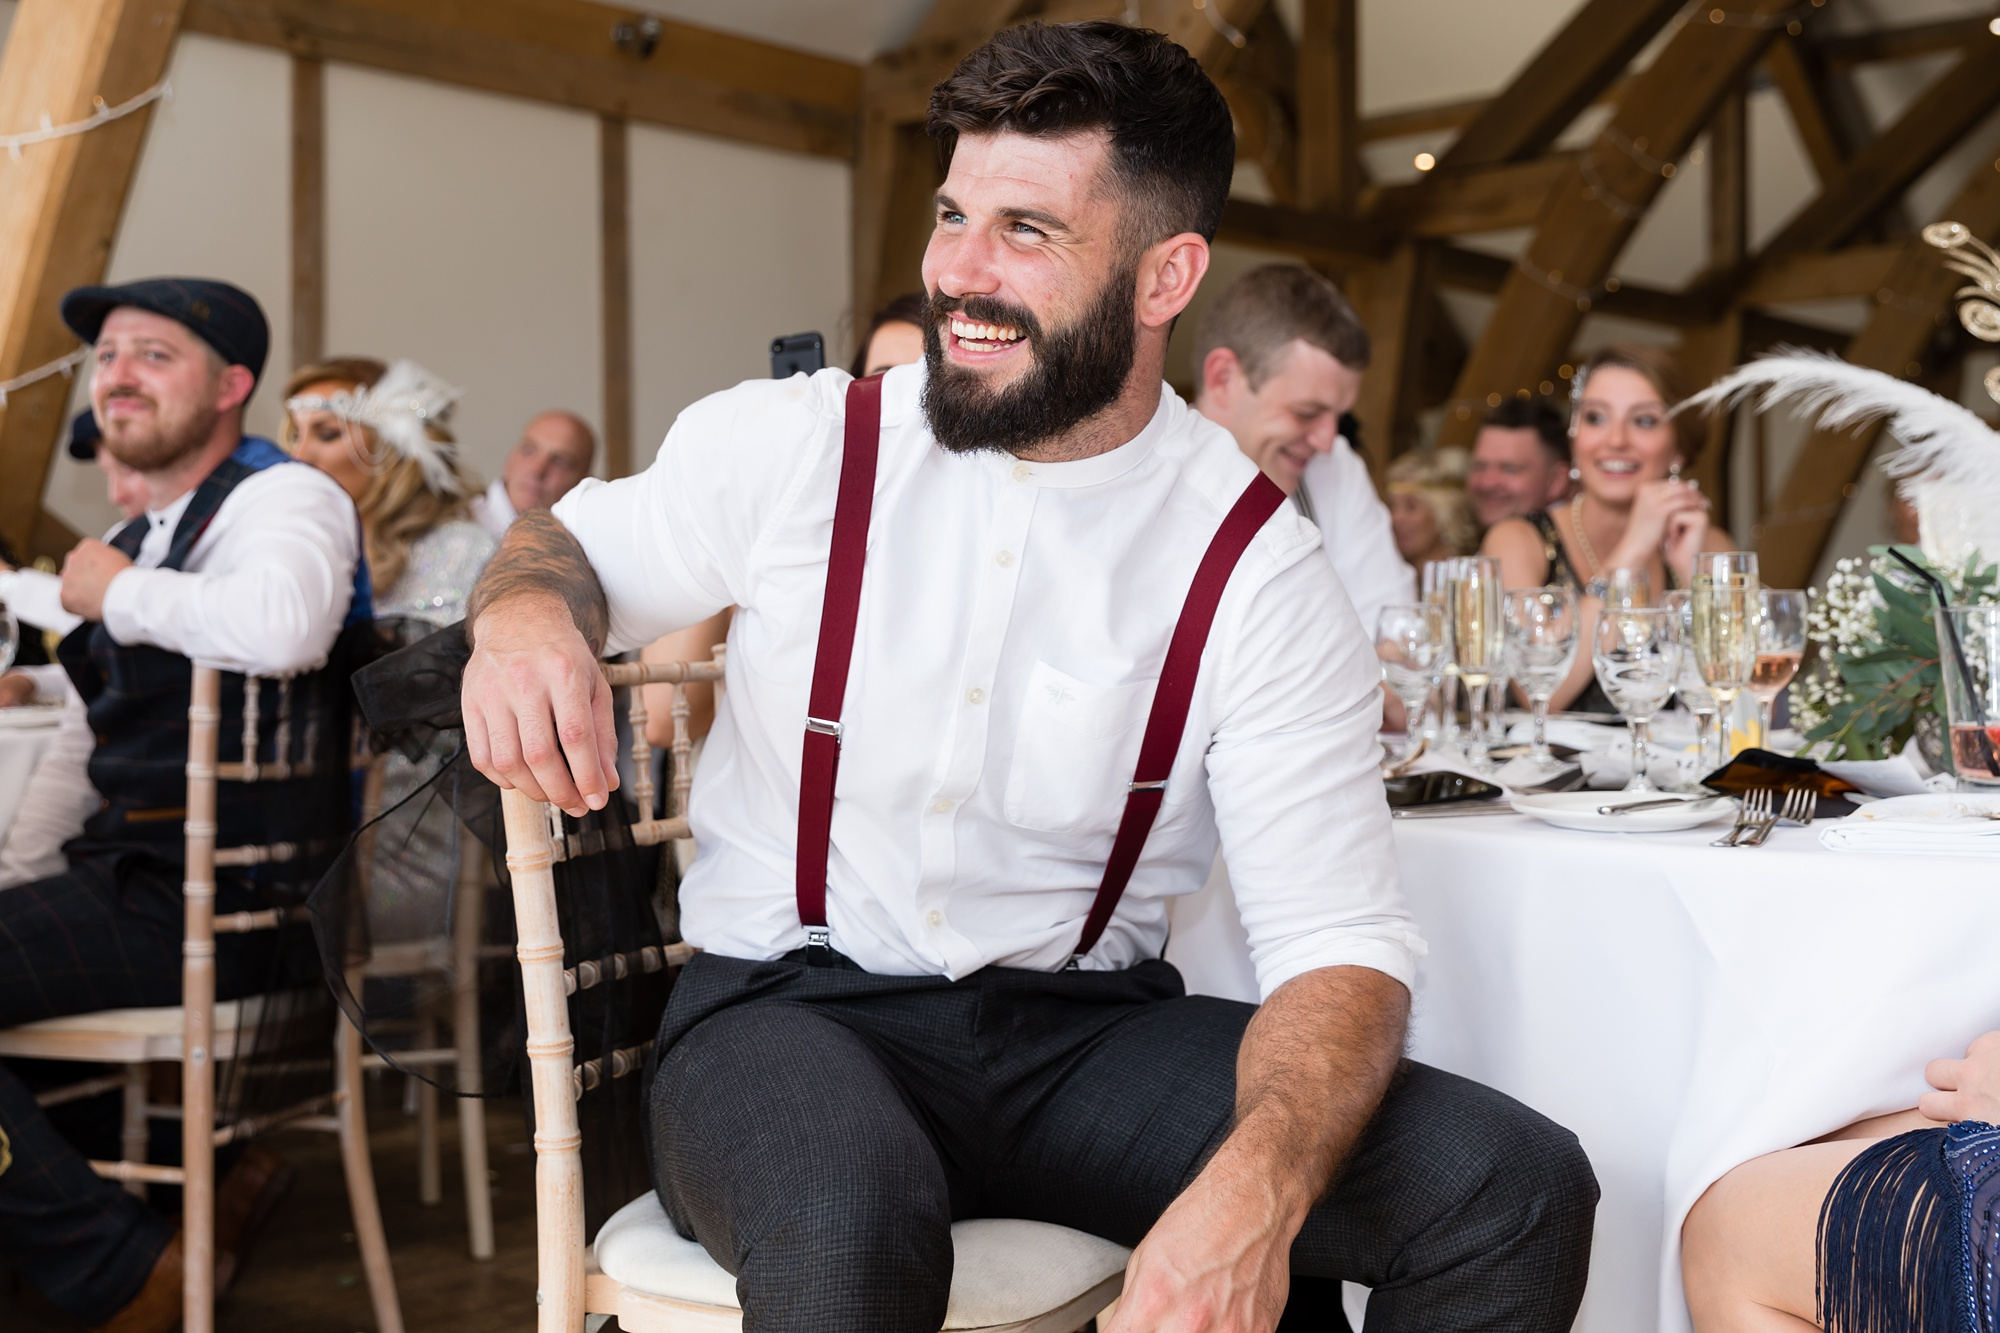 Guest with beard & braces laughing during speeches at Sandburn Hall Wedding.